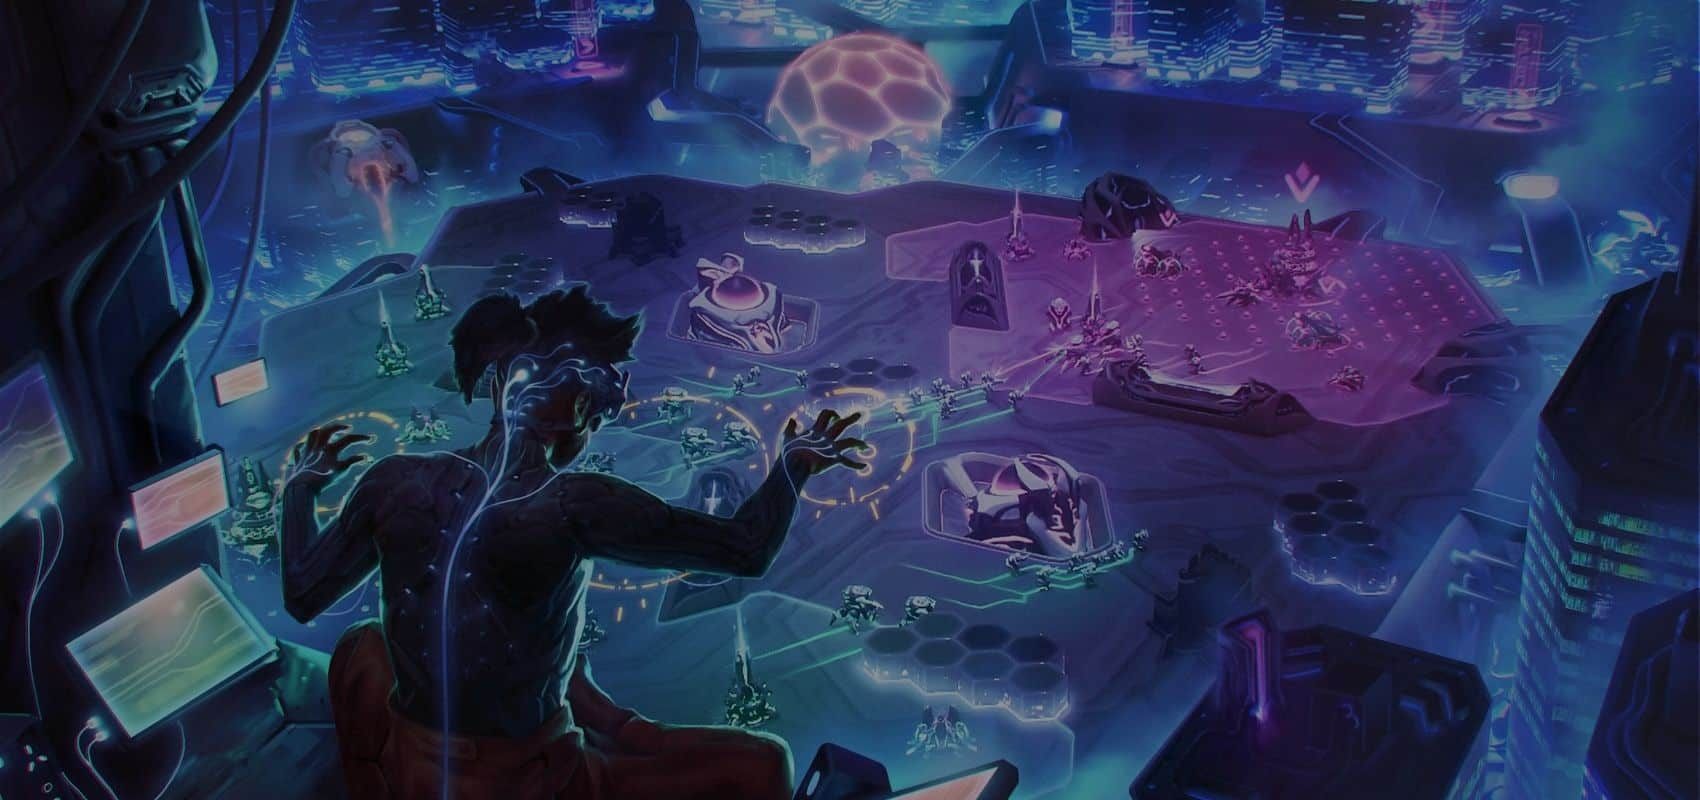 Post-cyberpunk strategy game NeuroSlicers is coming to reroute the synaptic pathways of the RTS genre on PC